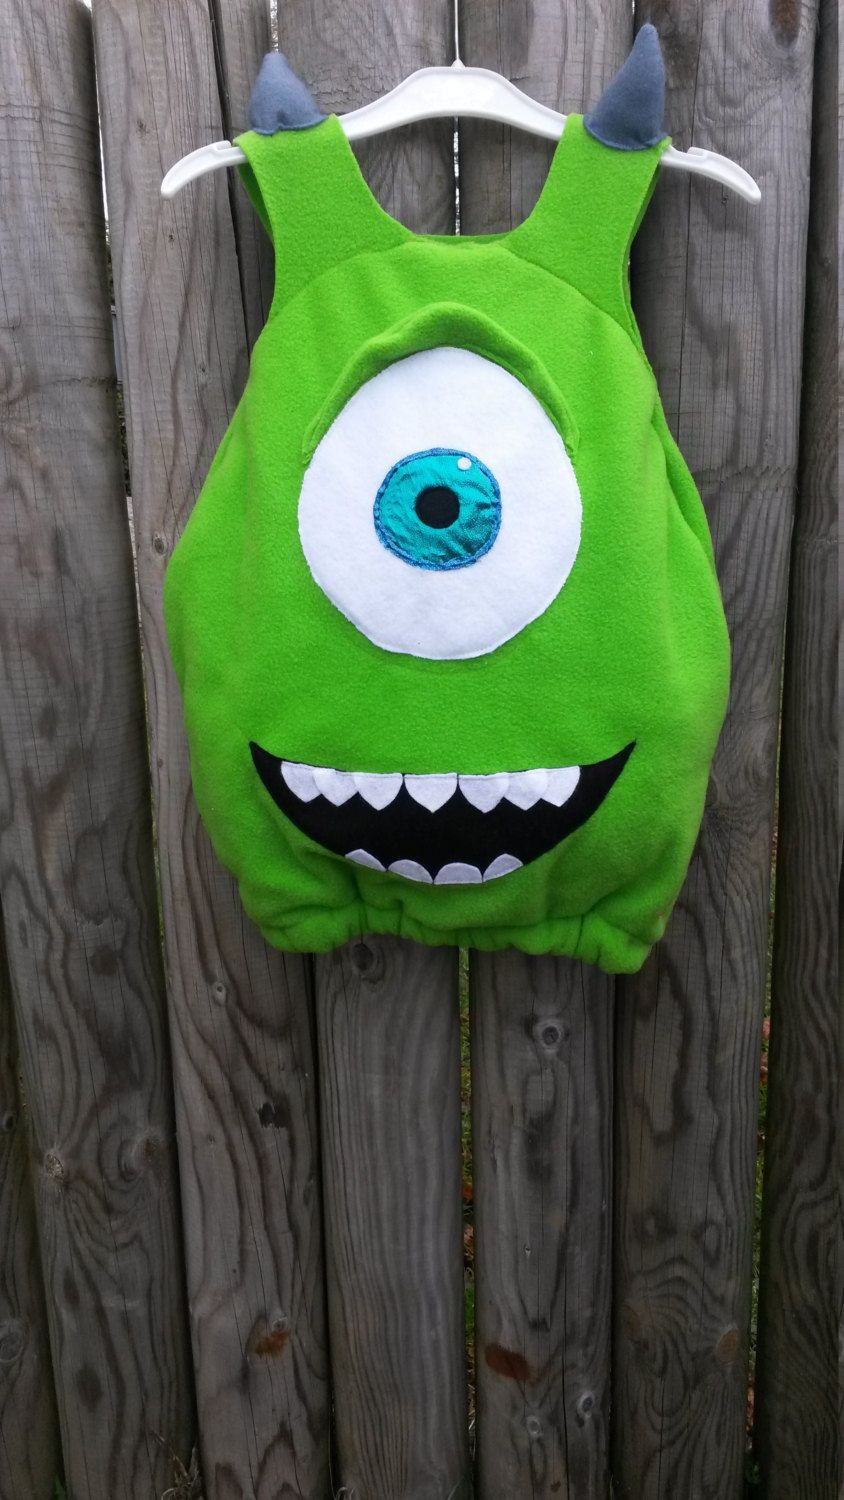 Mike Wazowski Costume From Disney Pixar 39 S Monsters Inc For Babies Toddlers And Children Mike Wazowski Costume Monsters Inc Costume Diy Diy Costumes Kids